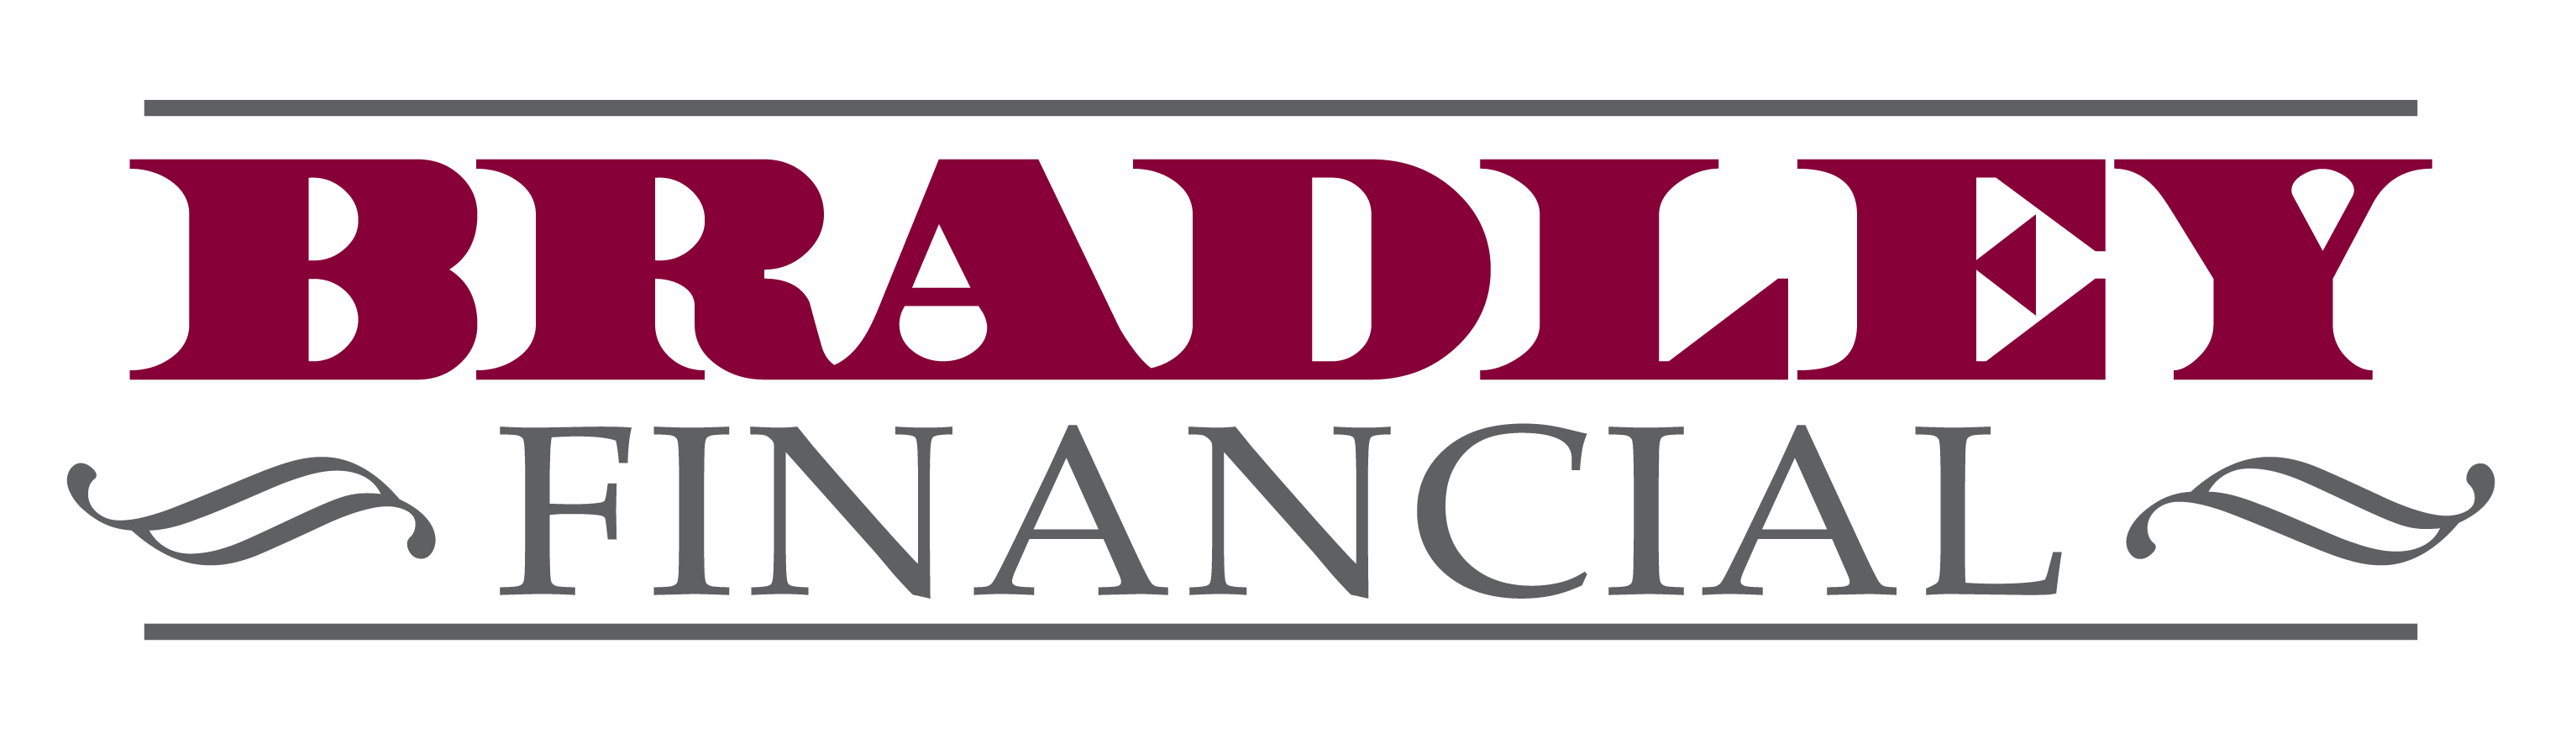 Bradley Financial